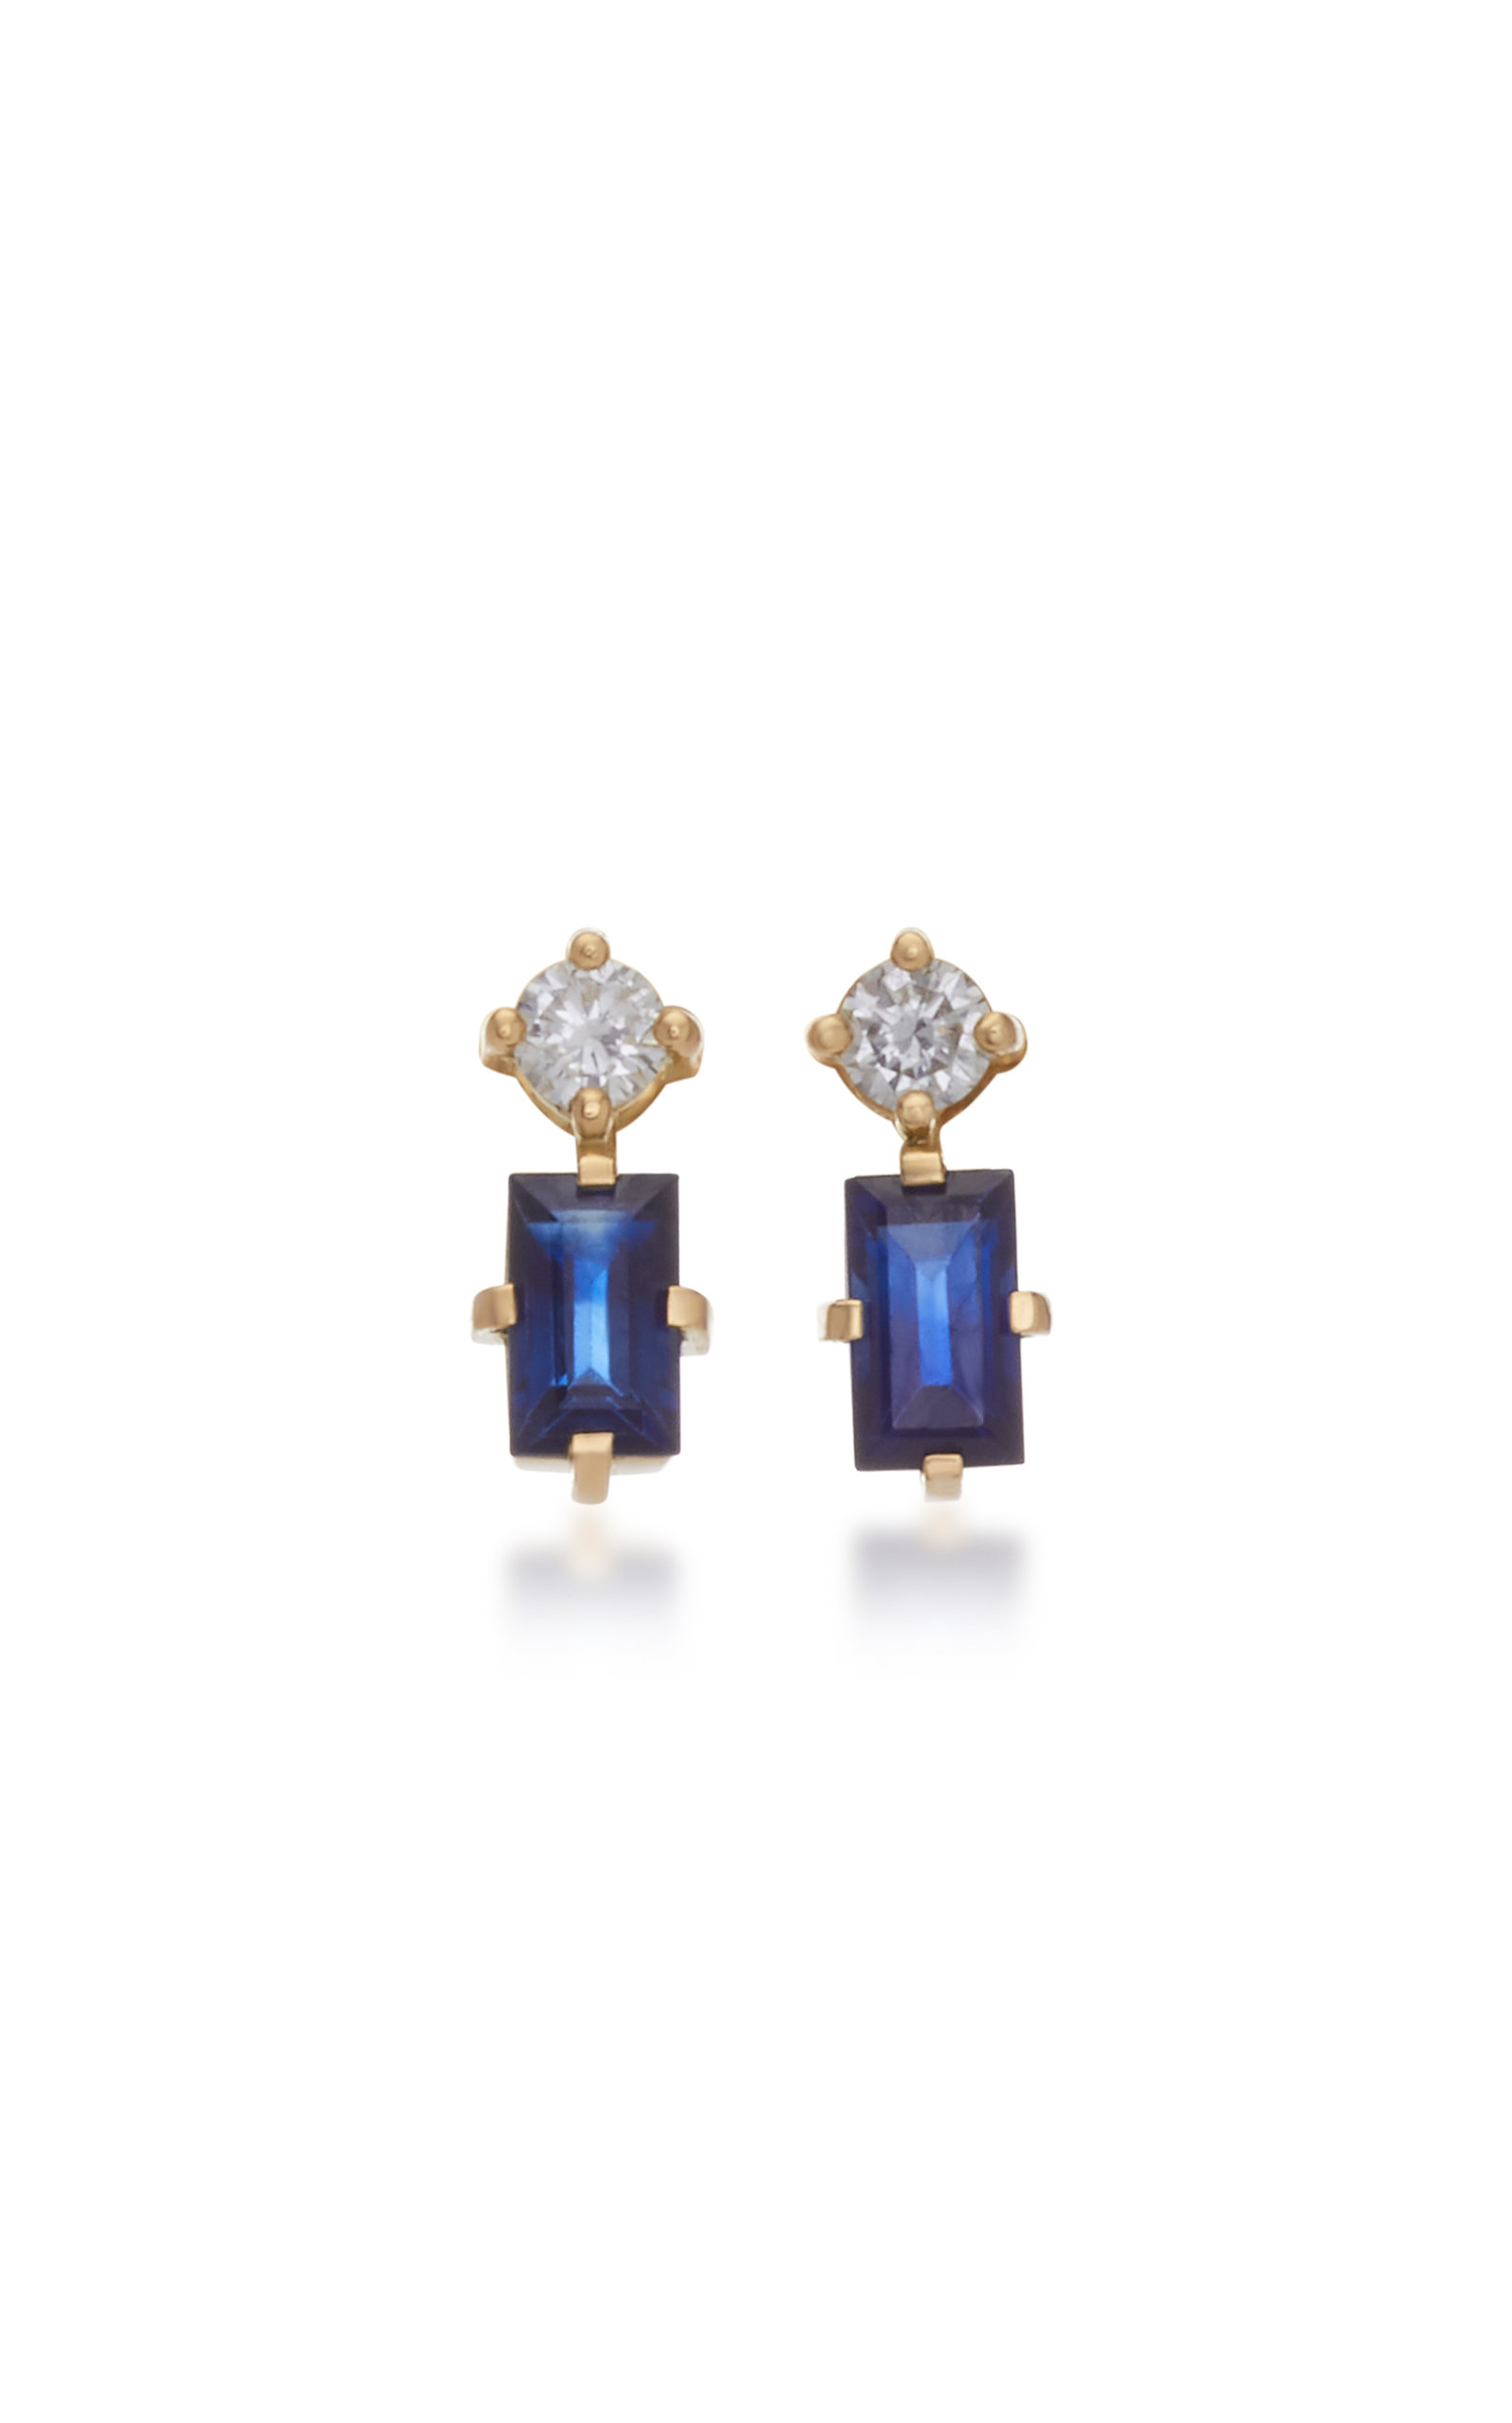 YI COLLECTION 18K Gold Sapphire And Diamond Earrings in Navy